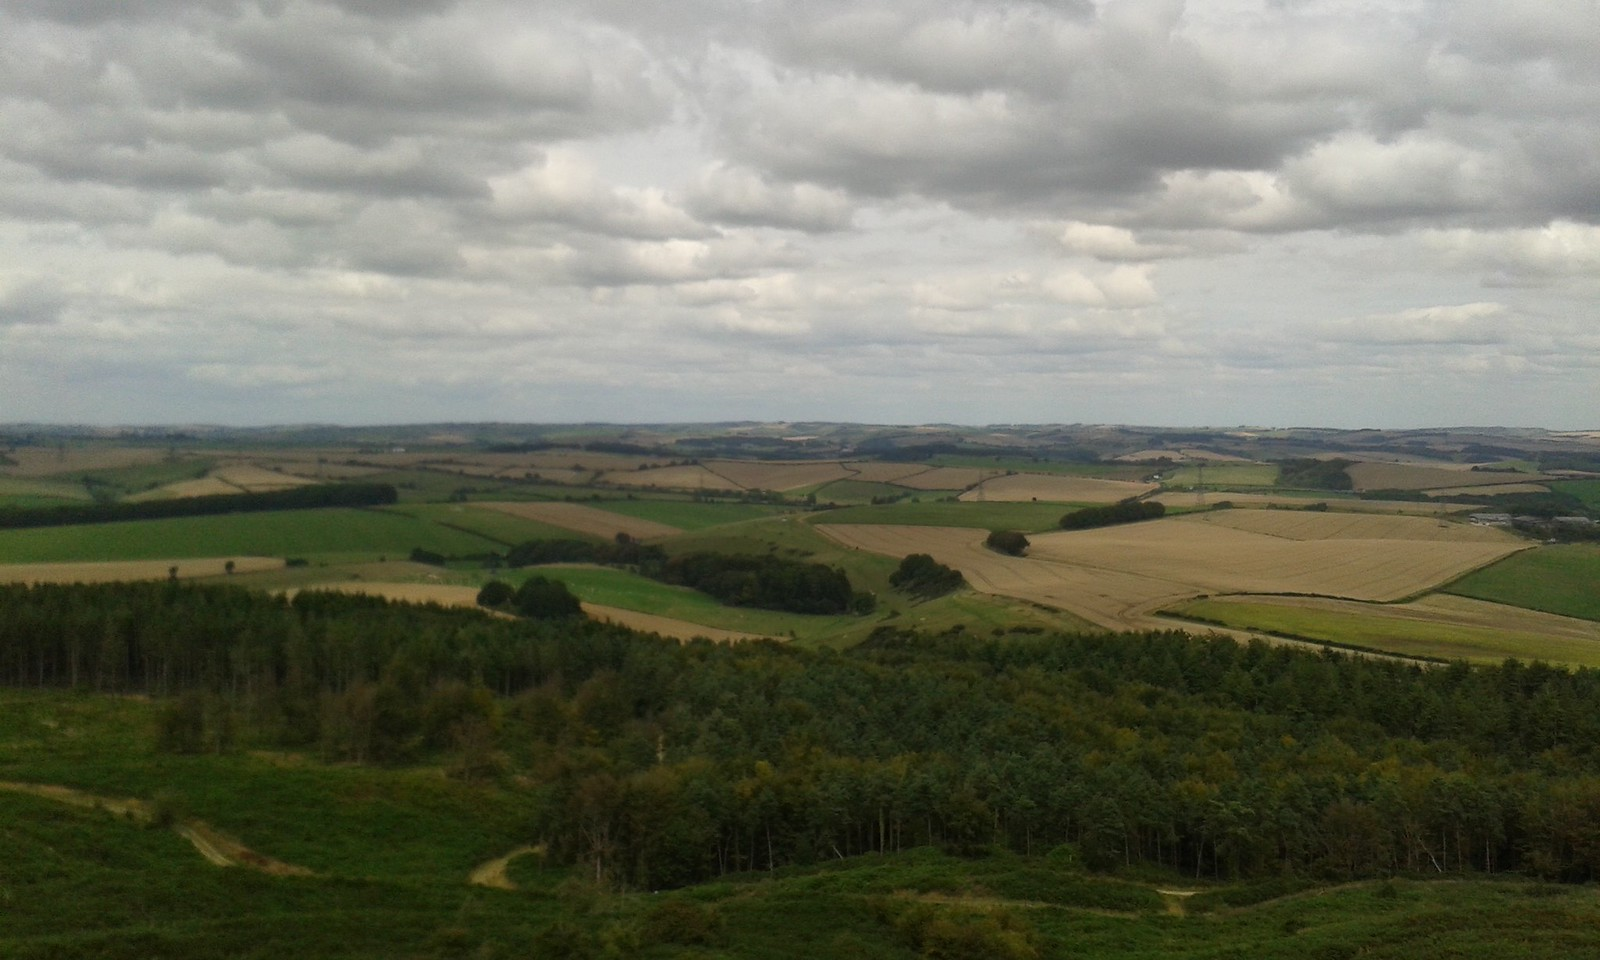 20150816_132912 Lovely views from Hardy Monument